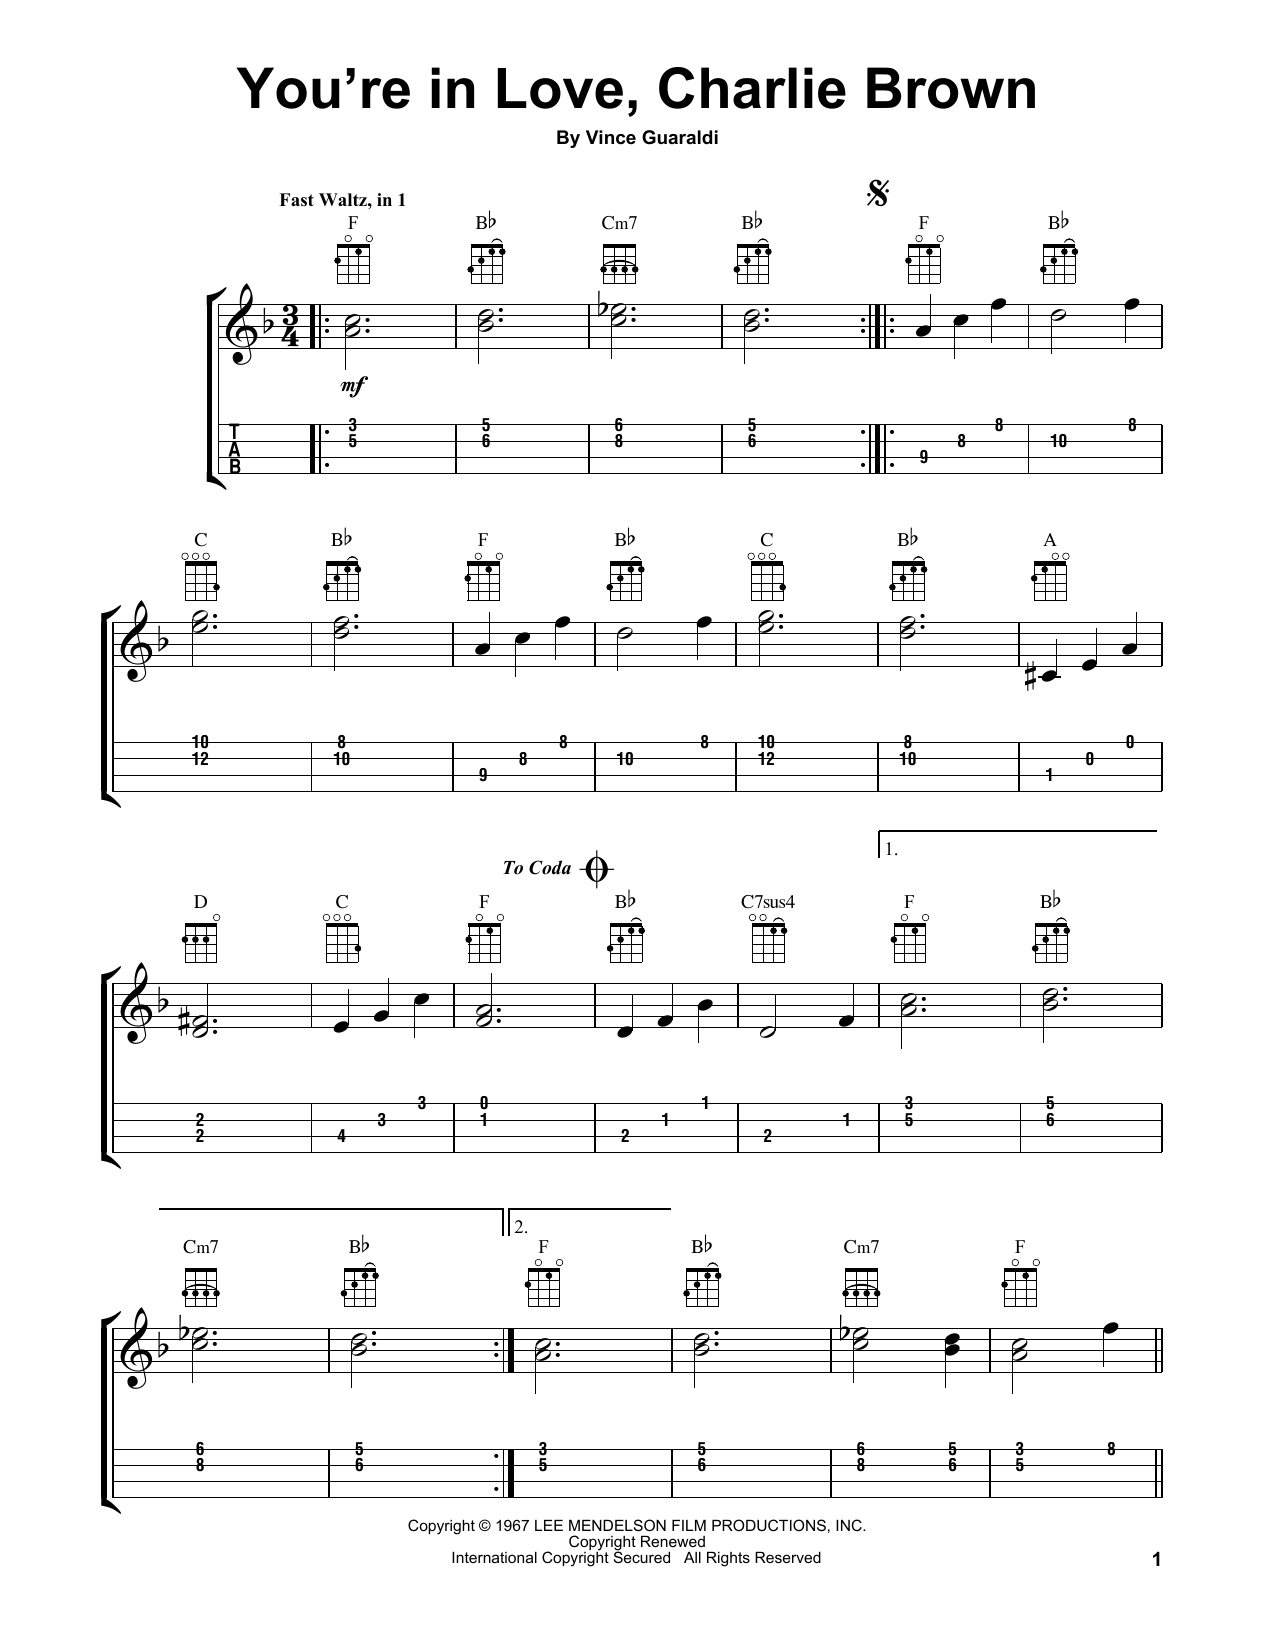 Tablature guitare You're In Love, Charlie Brown de Vince Guaraldi - Ukulele